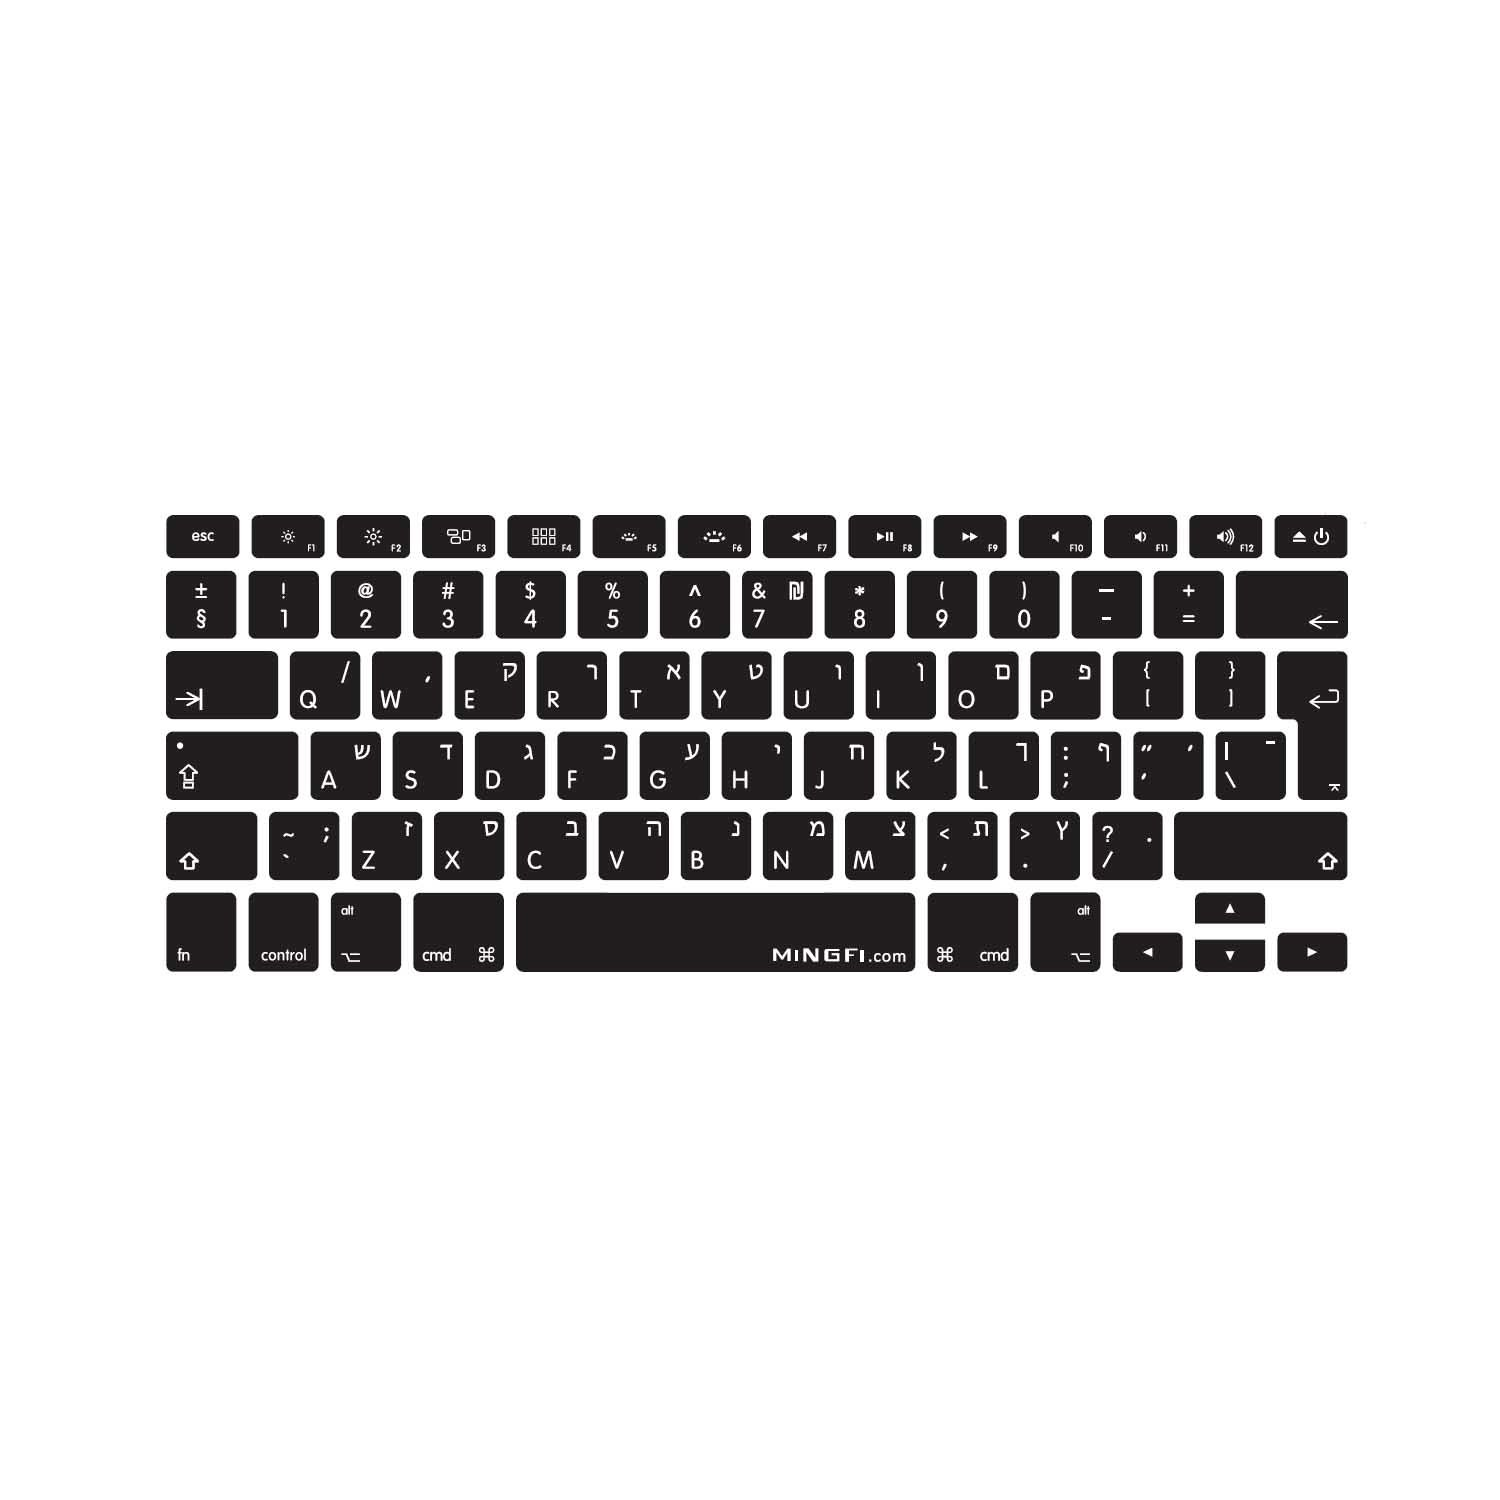 MiNGFi Norvé gien bokmå l Norwegian Clavier Coque de Protection / Couverture pour MacBook Pro 13' 15' 17' et Air 13' EU/ISO Keyboard Disposition Silicone Skin - Noir